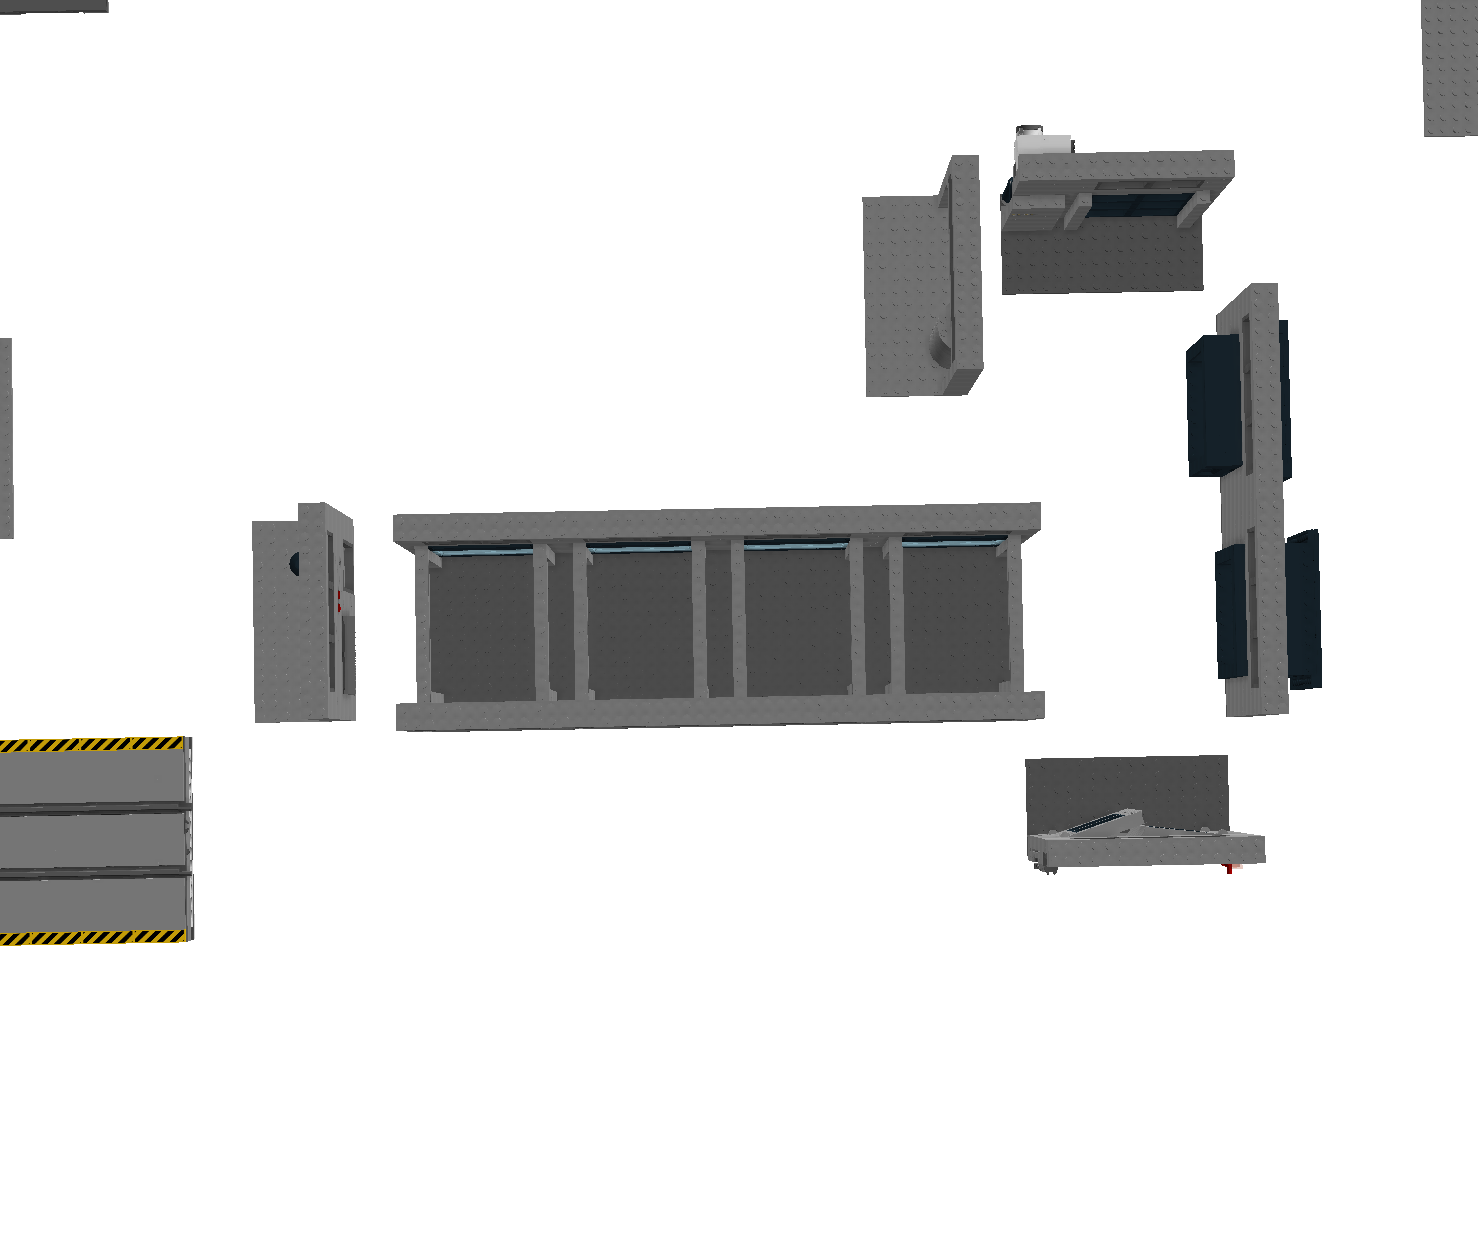 Since the beginning, I always made sure to have in mind that the warehouse should be modular. Therefore it should be able to be assembled in different configurations depending on the usecase. The modules uses the Moduverse Standard.